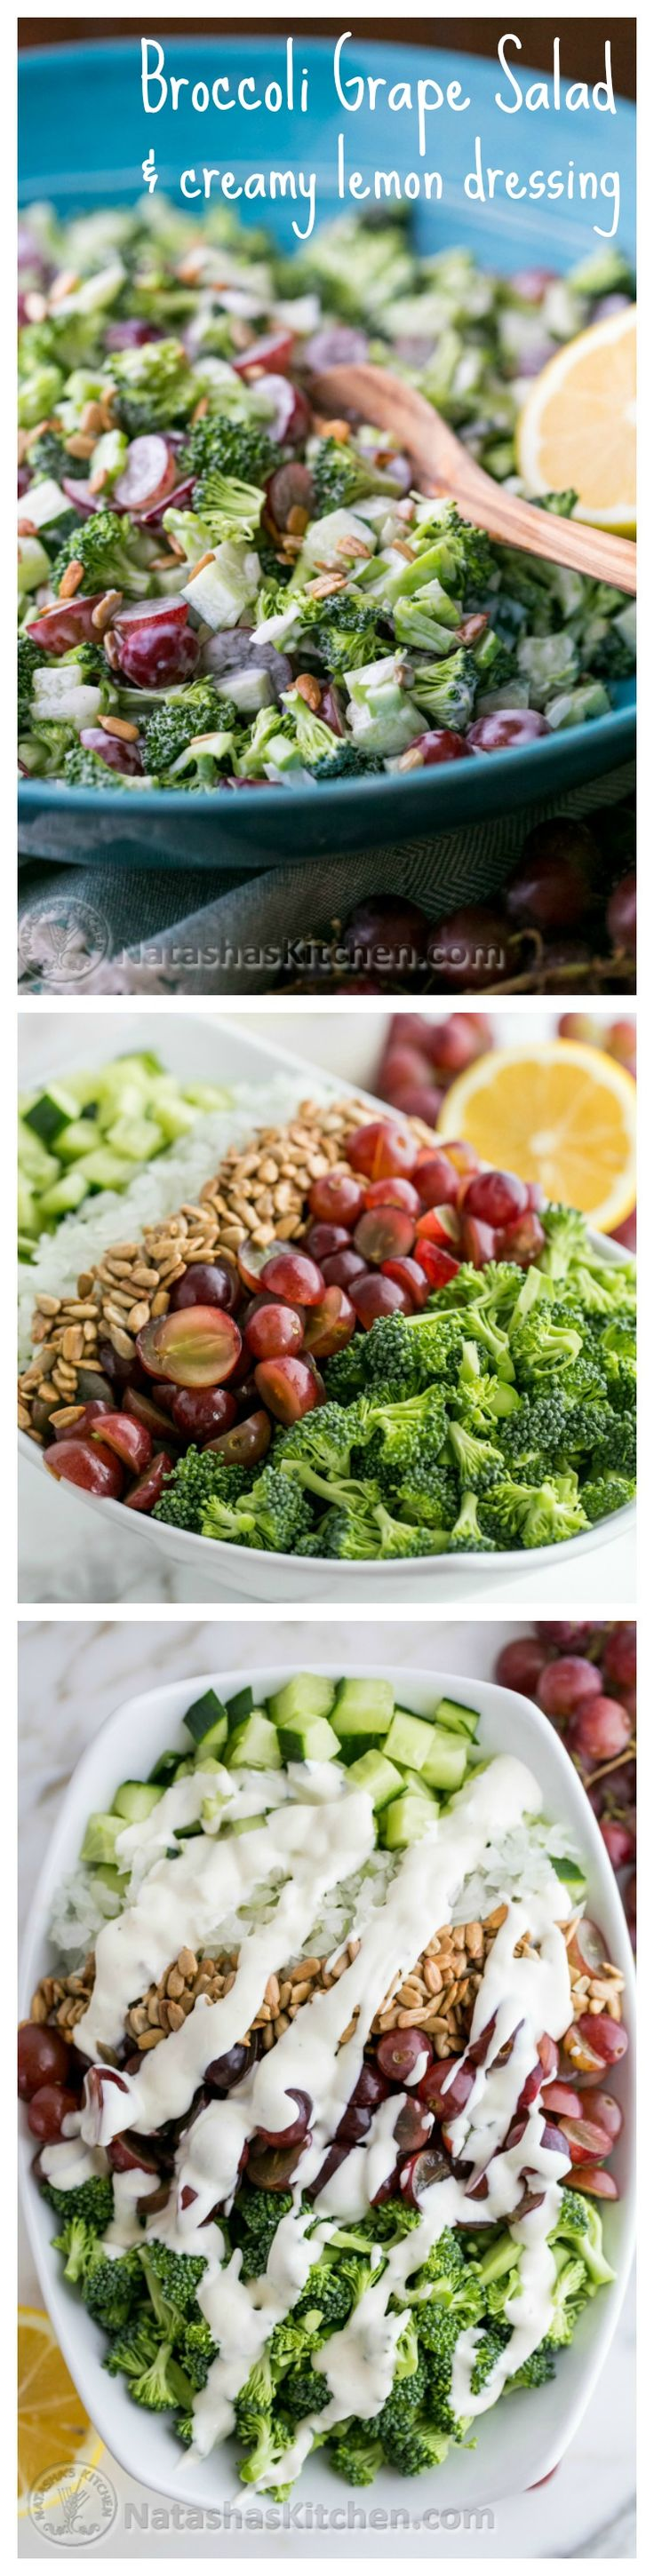 Broccoli Grape and Cucumber Salad with Creamy Lemon Dressing - Another awesome salad creation to make ahead that refrigerates well.